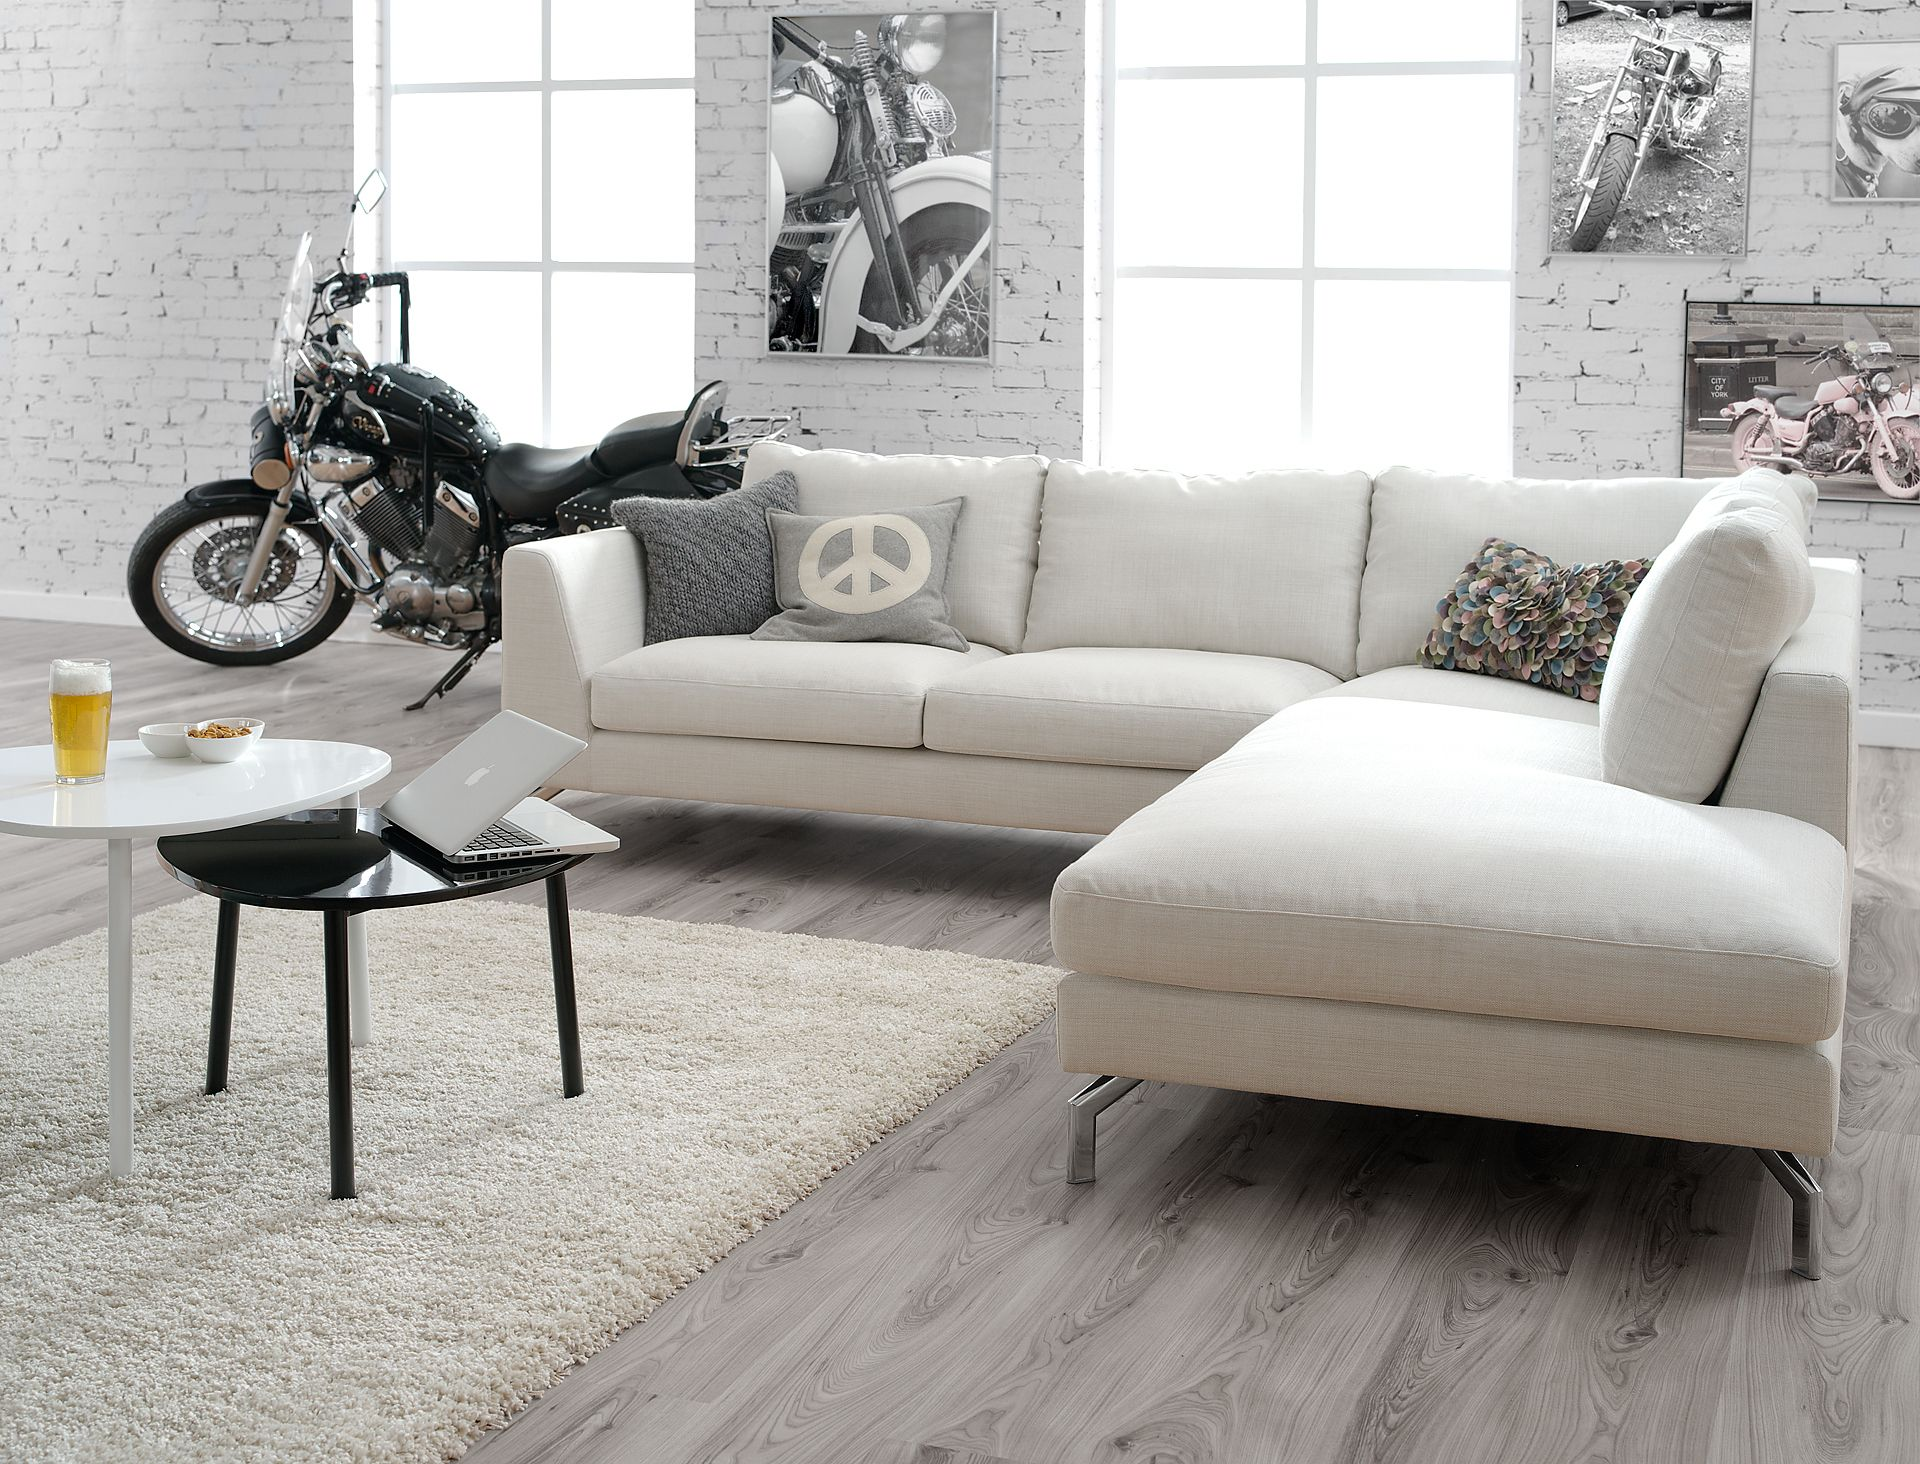 Scandinavian Furniture Sale L Shape Sofa Scandinavian Furniture Home Inspirations